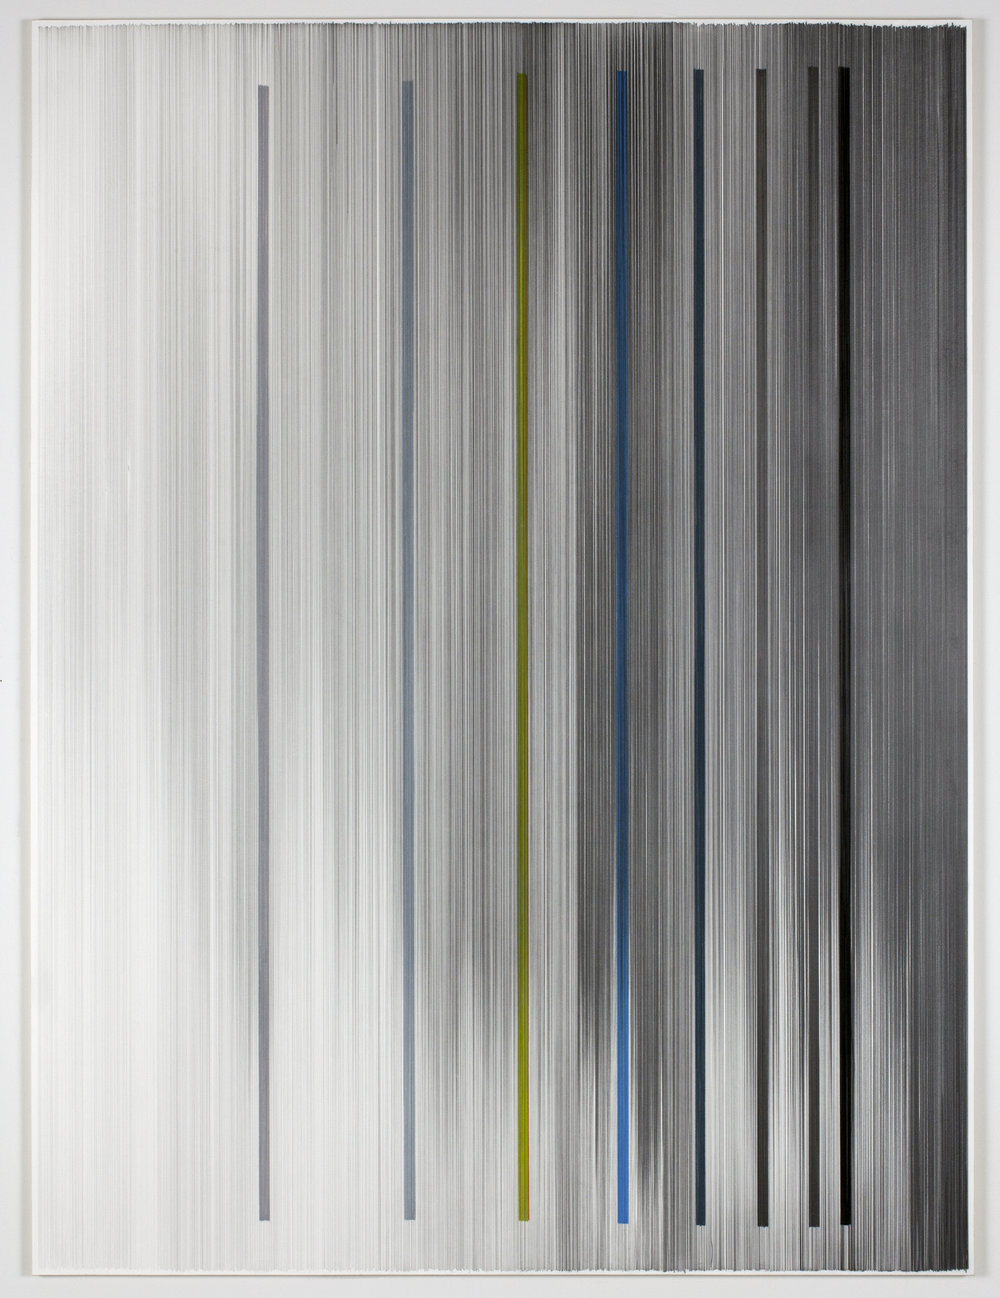 and reappear   2016   graphite & colored pencil on mat board   60 by 80 inches